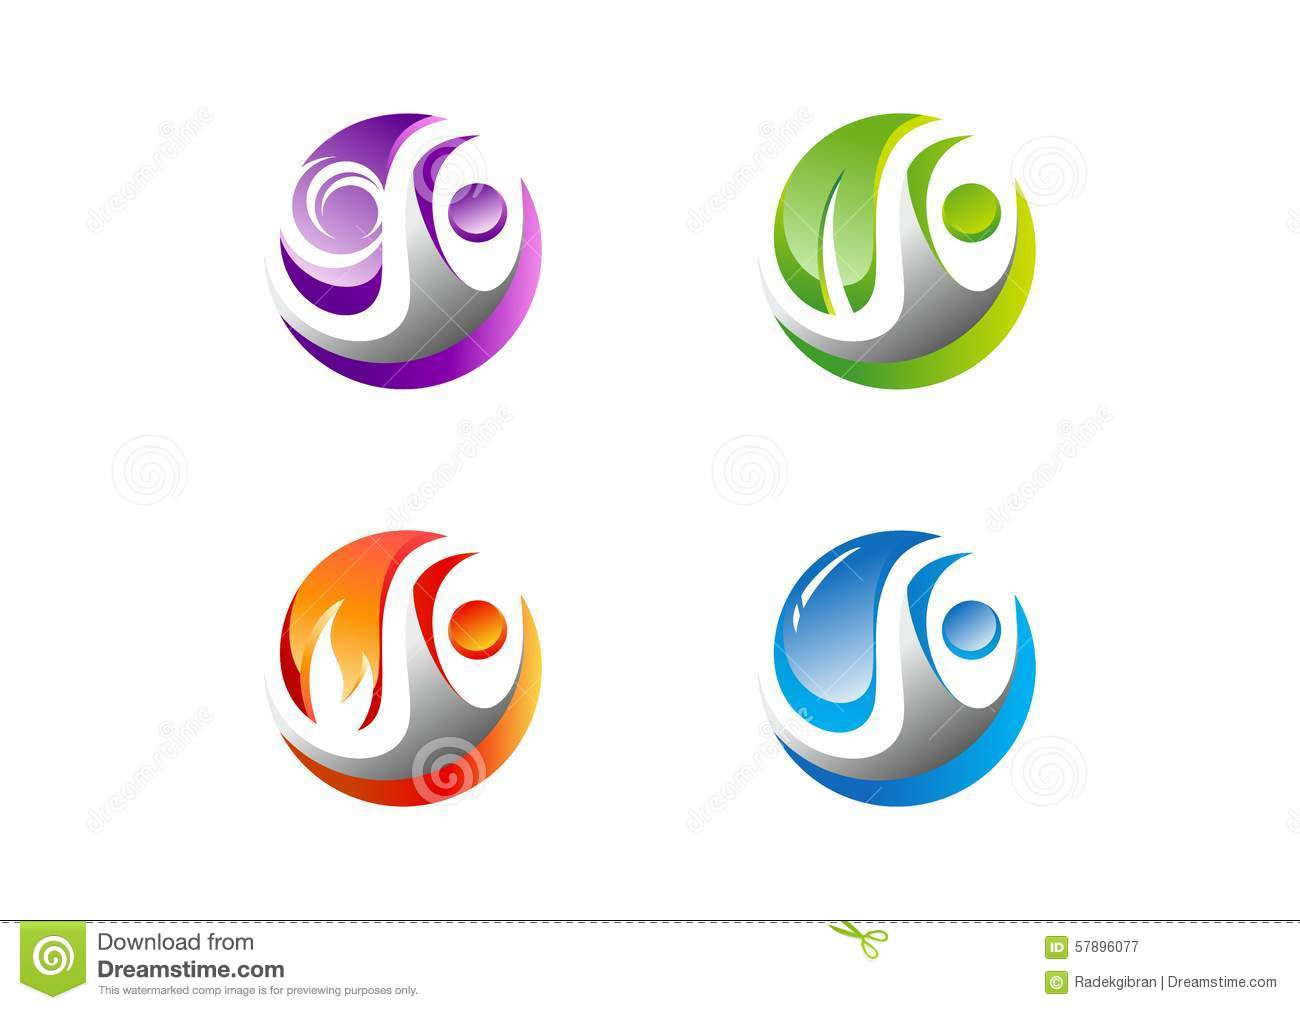 Circle,people,water,wind,flame,leaf,logo, Set of four nature element icon symbol vector design